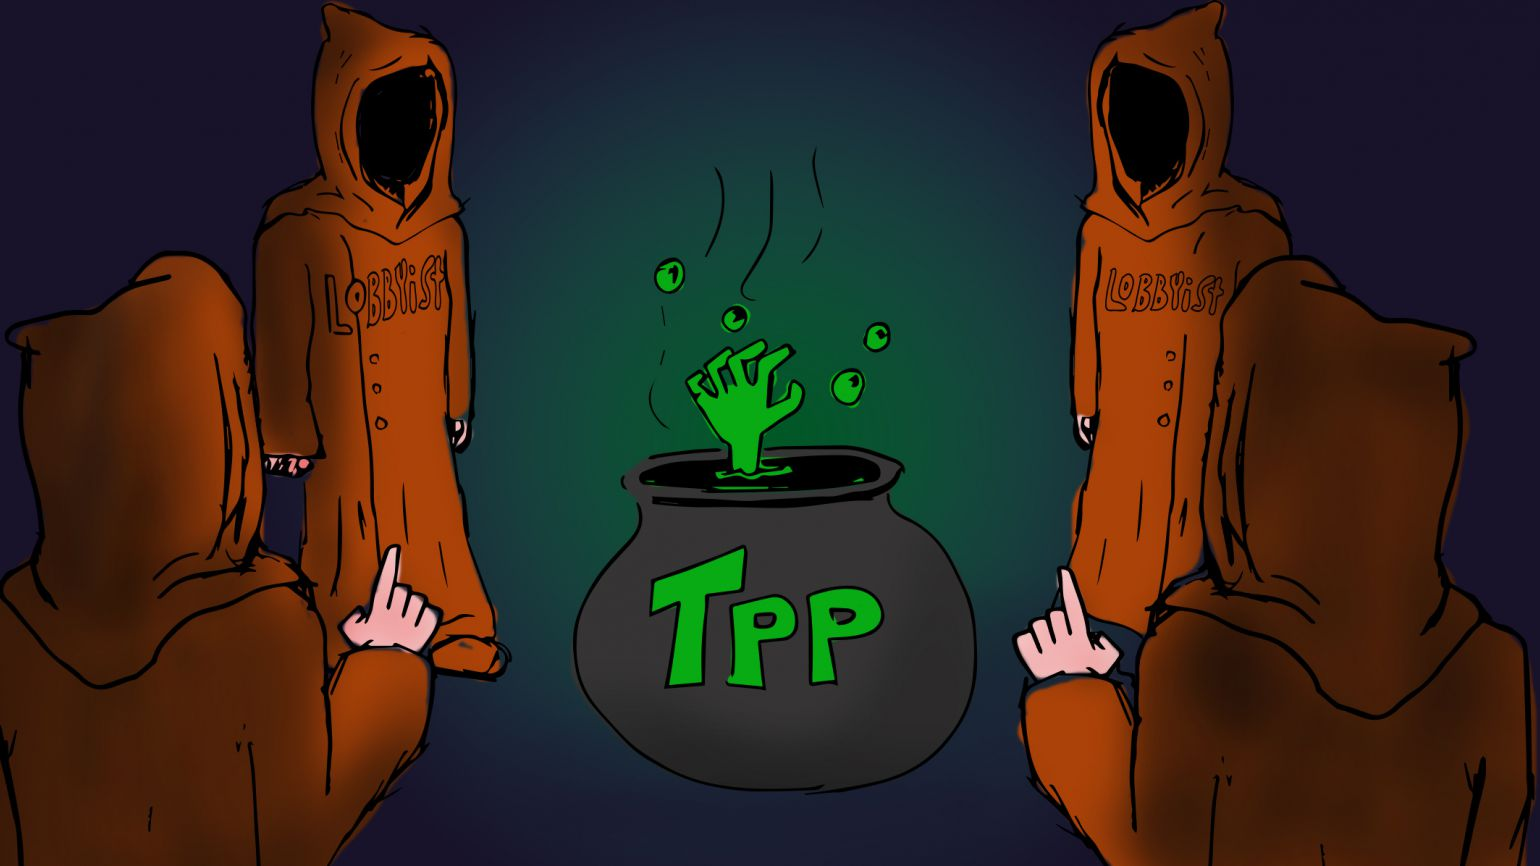 Let's Send The TPP Back To Its Grave